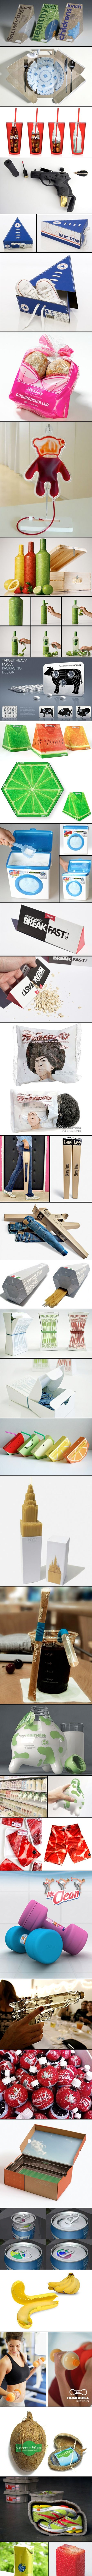 Assorted clever #packaging PD